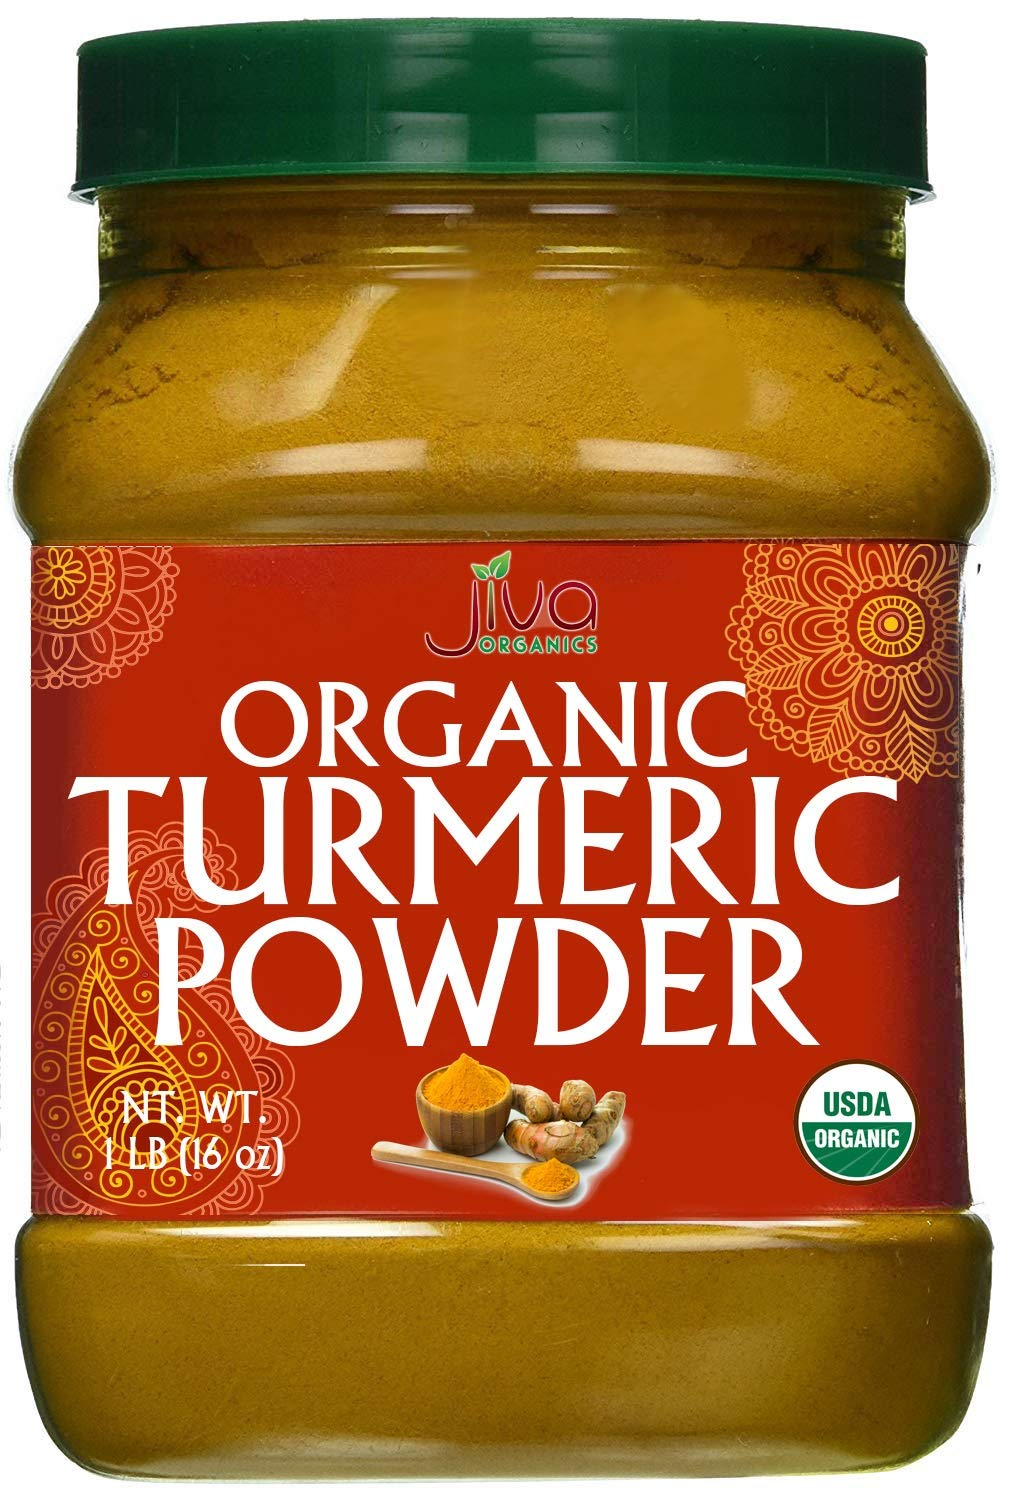 Organic Turmeric Root Powder 16oz - Lab Tested for Heavy Metals